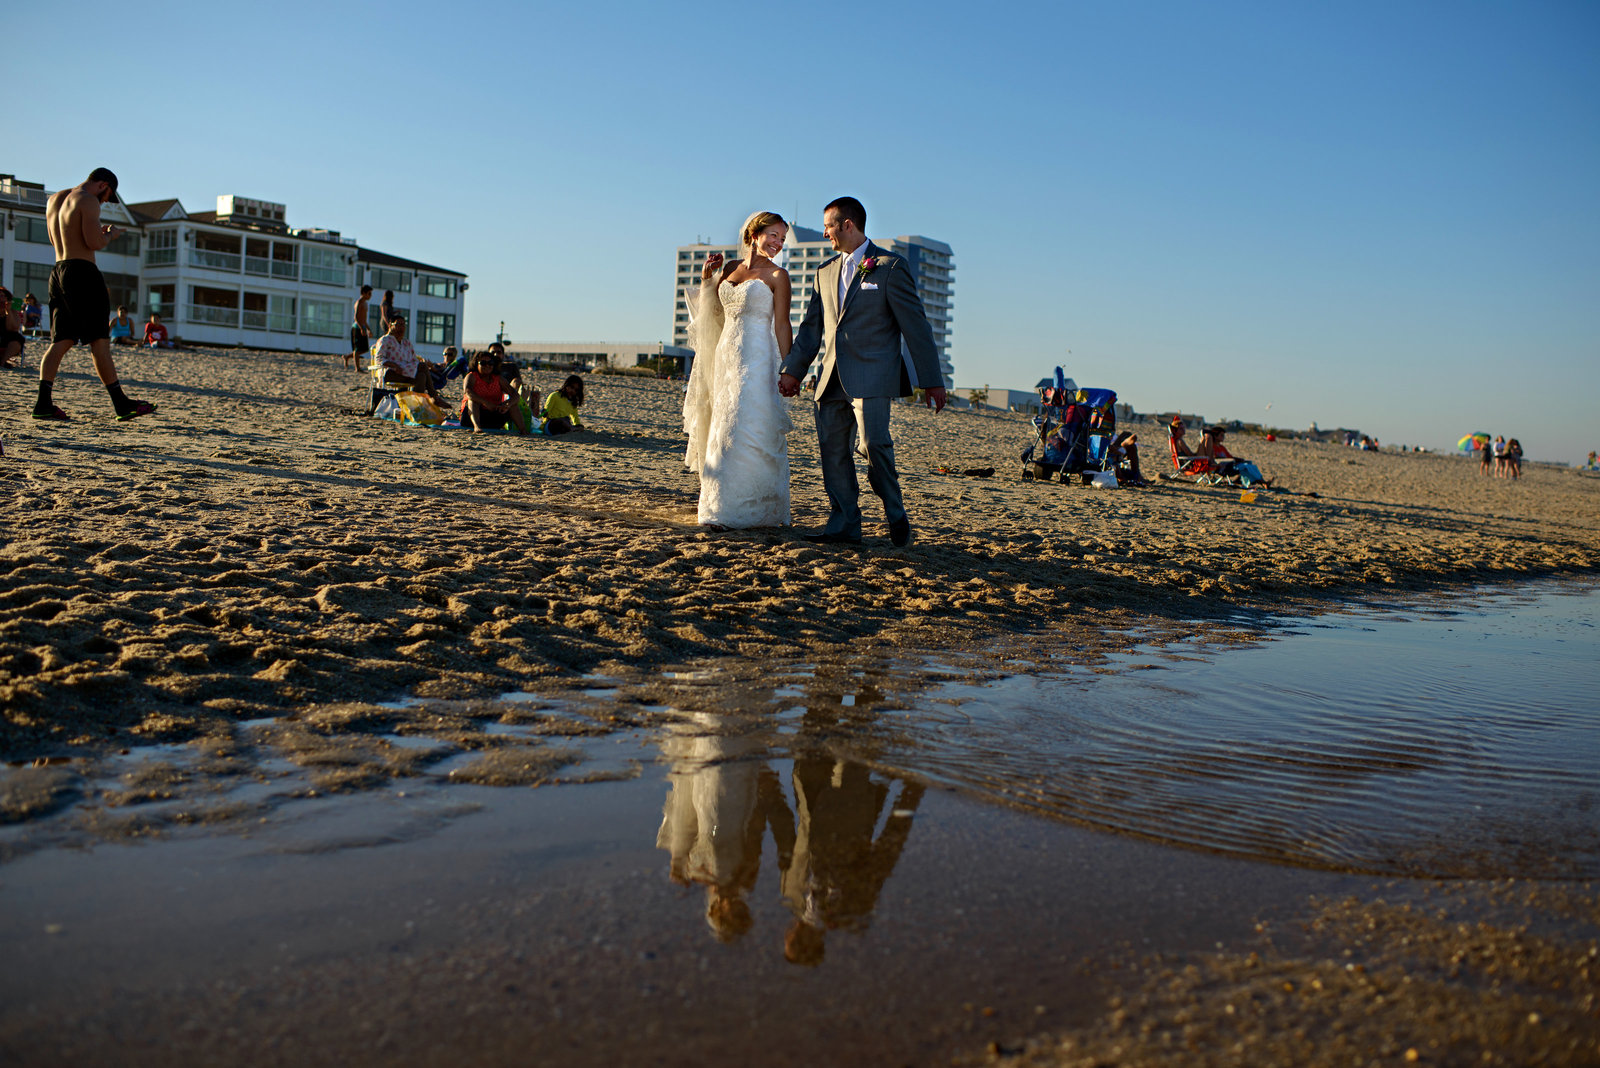 A newly married couple walk along the beach after their long branch NJ wedding.